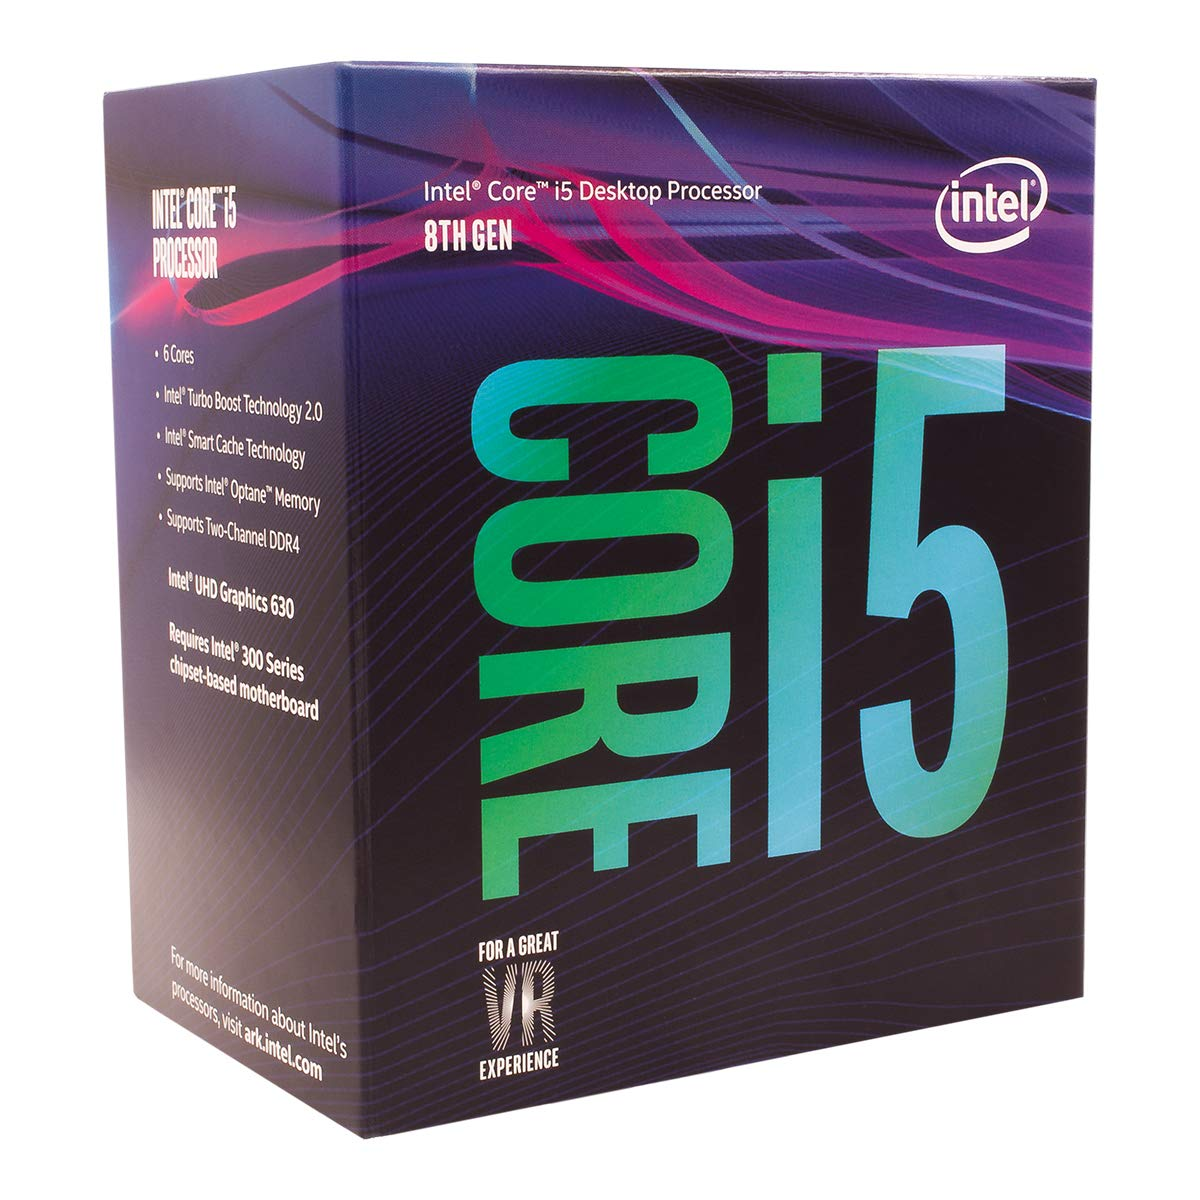 Intel Core I5-8400 6 Cores Up To 4.0 Ghz Lga 1151 300 Series